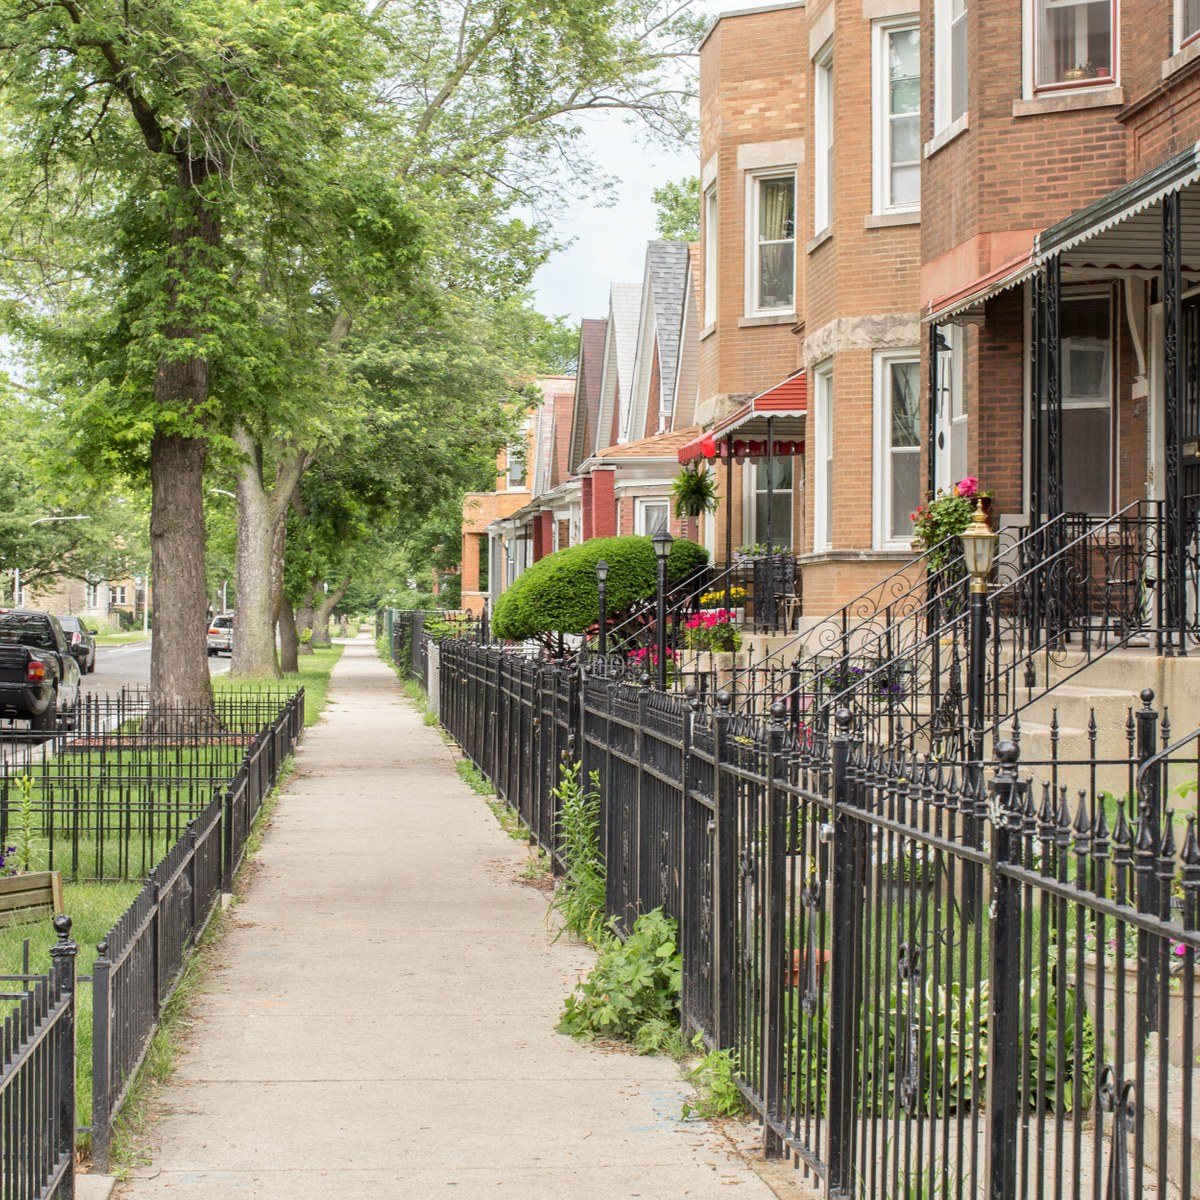 Garfield Park Apartments: East Garfield Park, Chicago IL - Neighborhood Guide